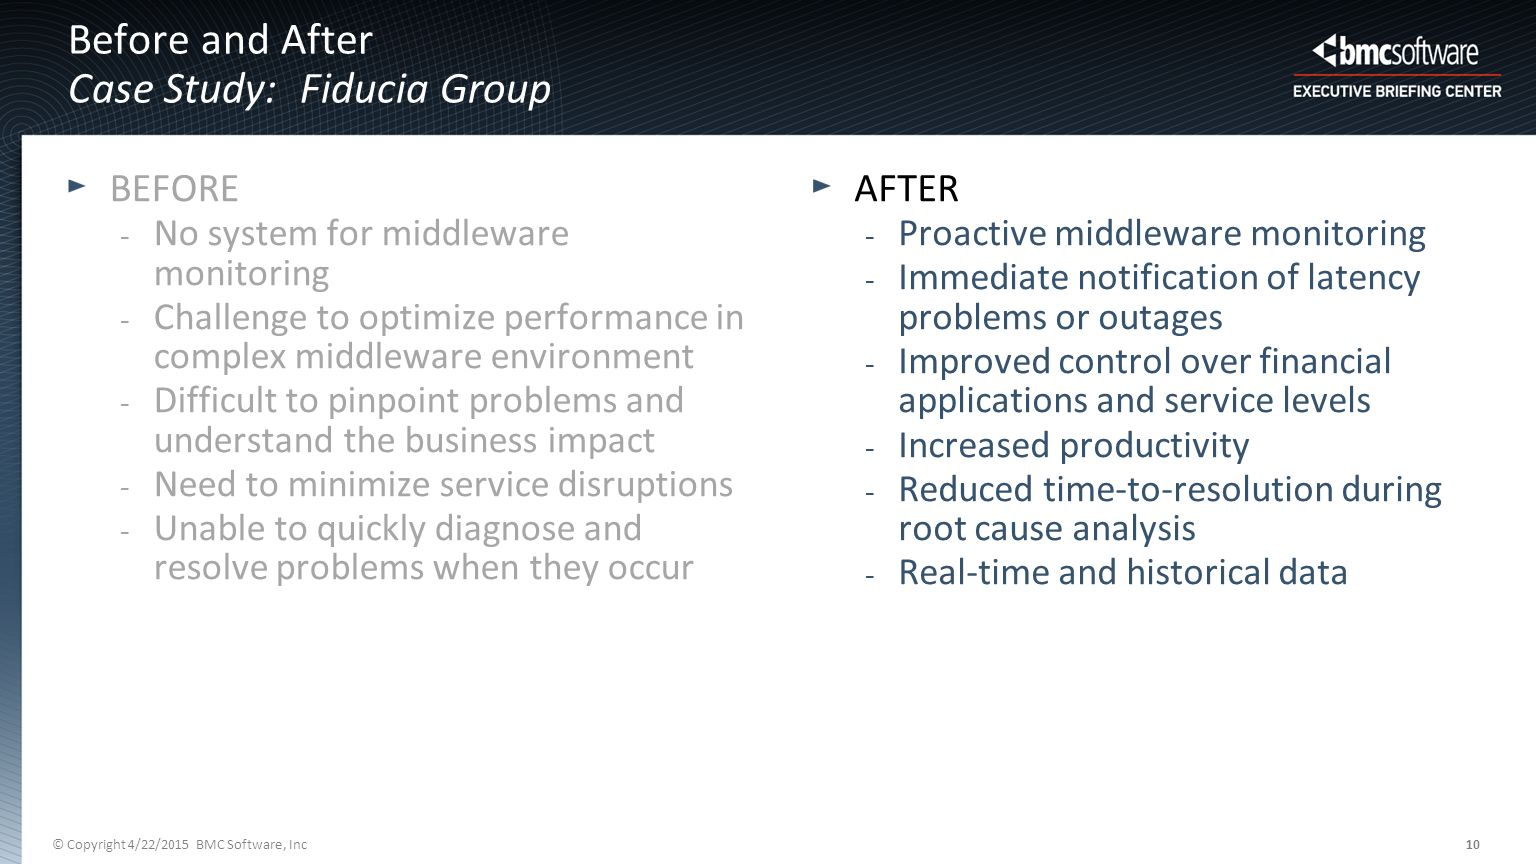 © Copyright 4/22/2015 BMC Software, Inc10 AFTER - Proactive middleware monitoring - Immediate notification of latency problems or outages - Improved control over financial applications and service levels - Increased productivity - Reduced time-to-resolution during root cause analysis - Real-time and historical data Before and After Case Study: Fiducia Group BEFORE - No system for middleware monitoring - Challenge to optimize performance in complex middleware environment - Difficult to pinpoint problems and understand the business impact - Need to minimize service disruptions - Unable to quickly diagnose and resolve problems when they occur